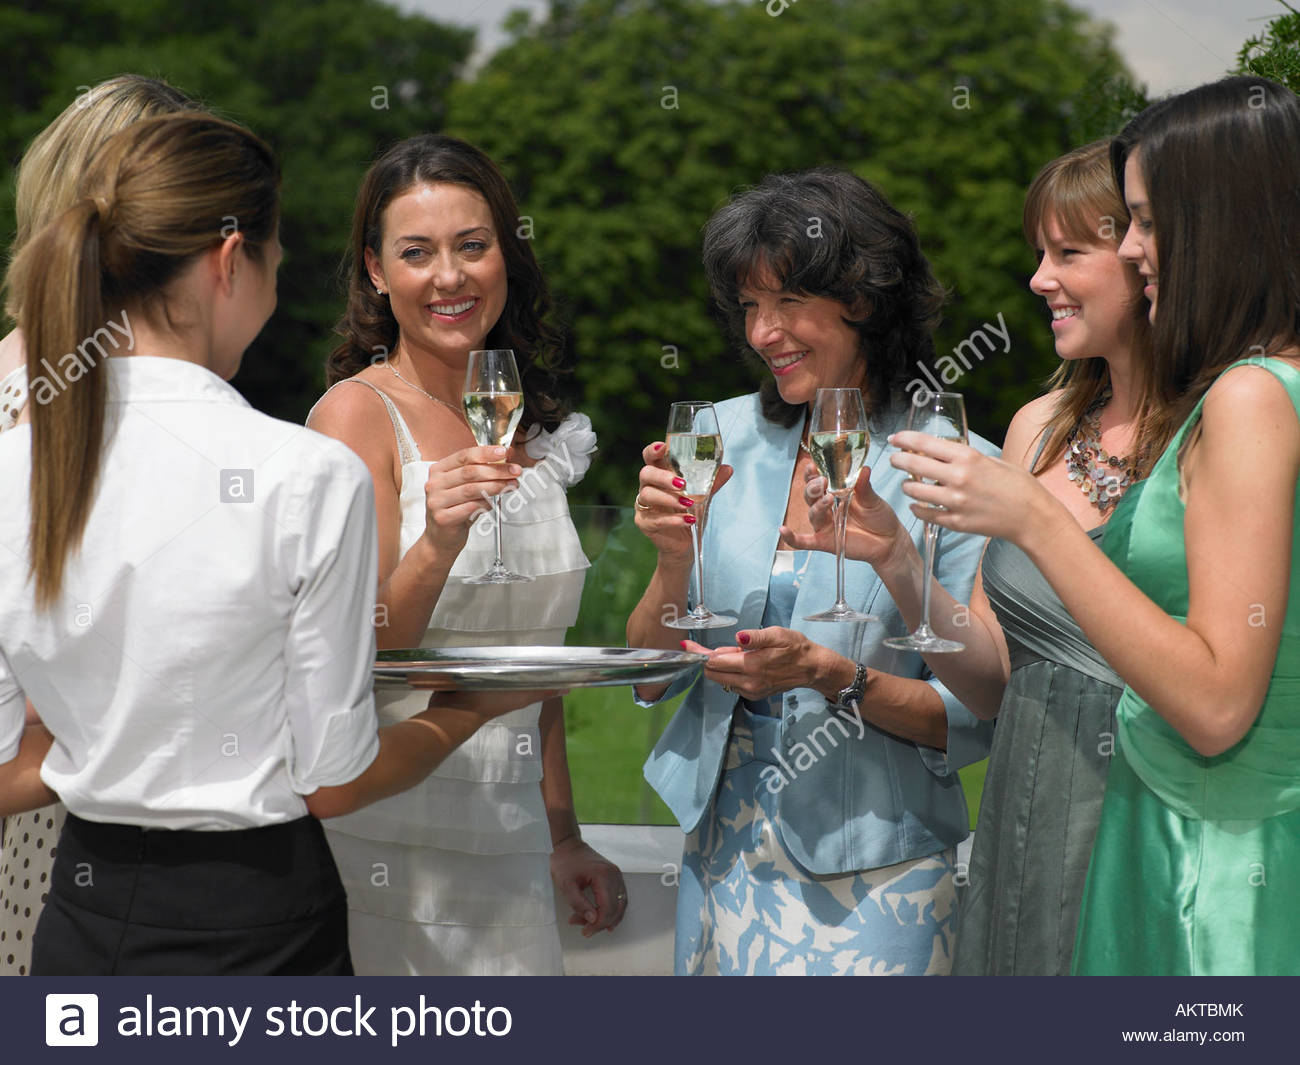 The bride and female wedding guests - Stock Image